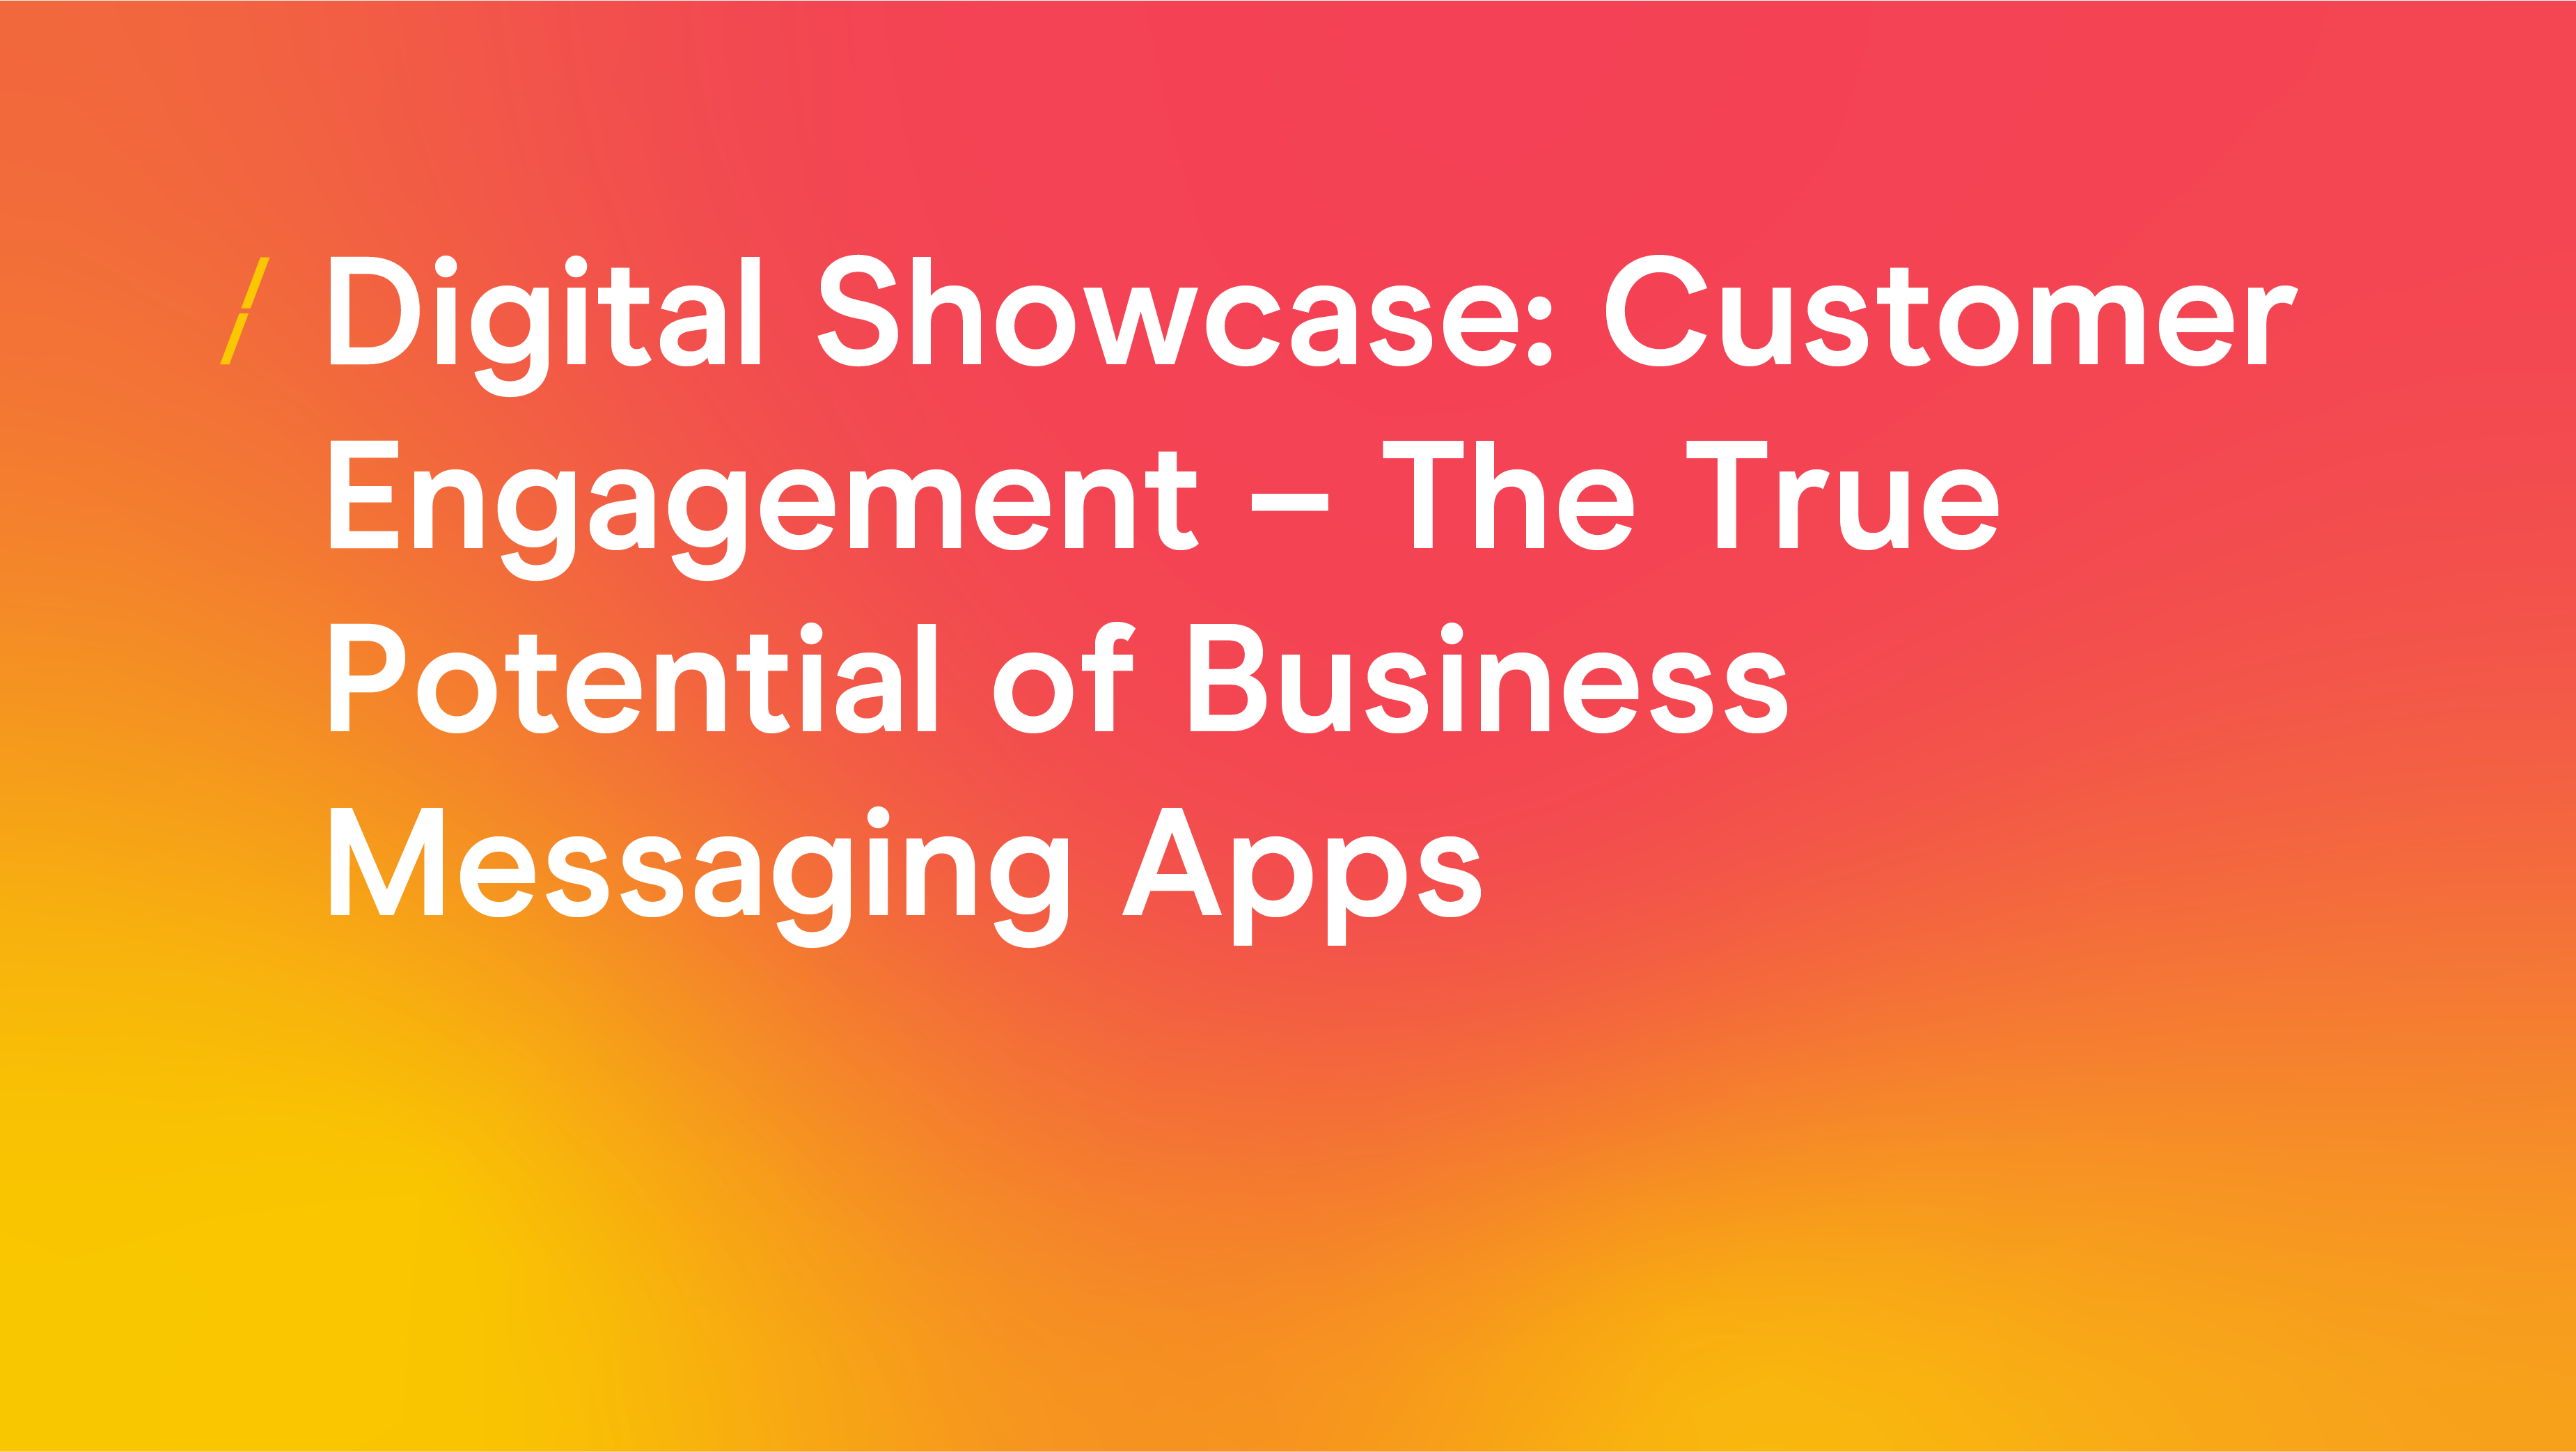 Digital Showcase-Customer Engagement  The True Potential of Business Messaging Apps.png